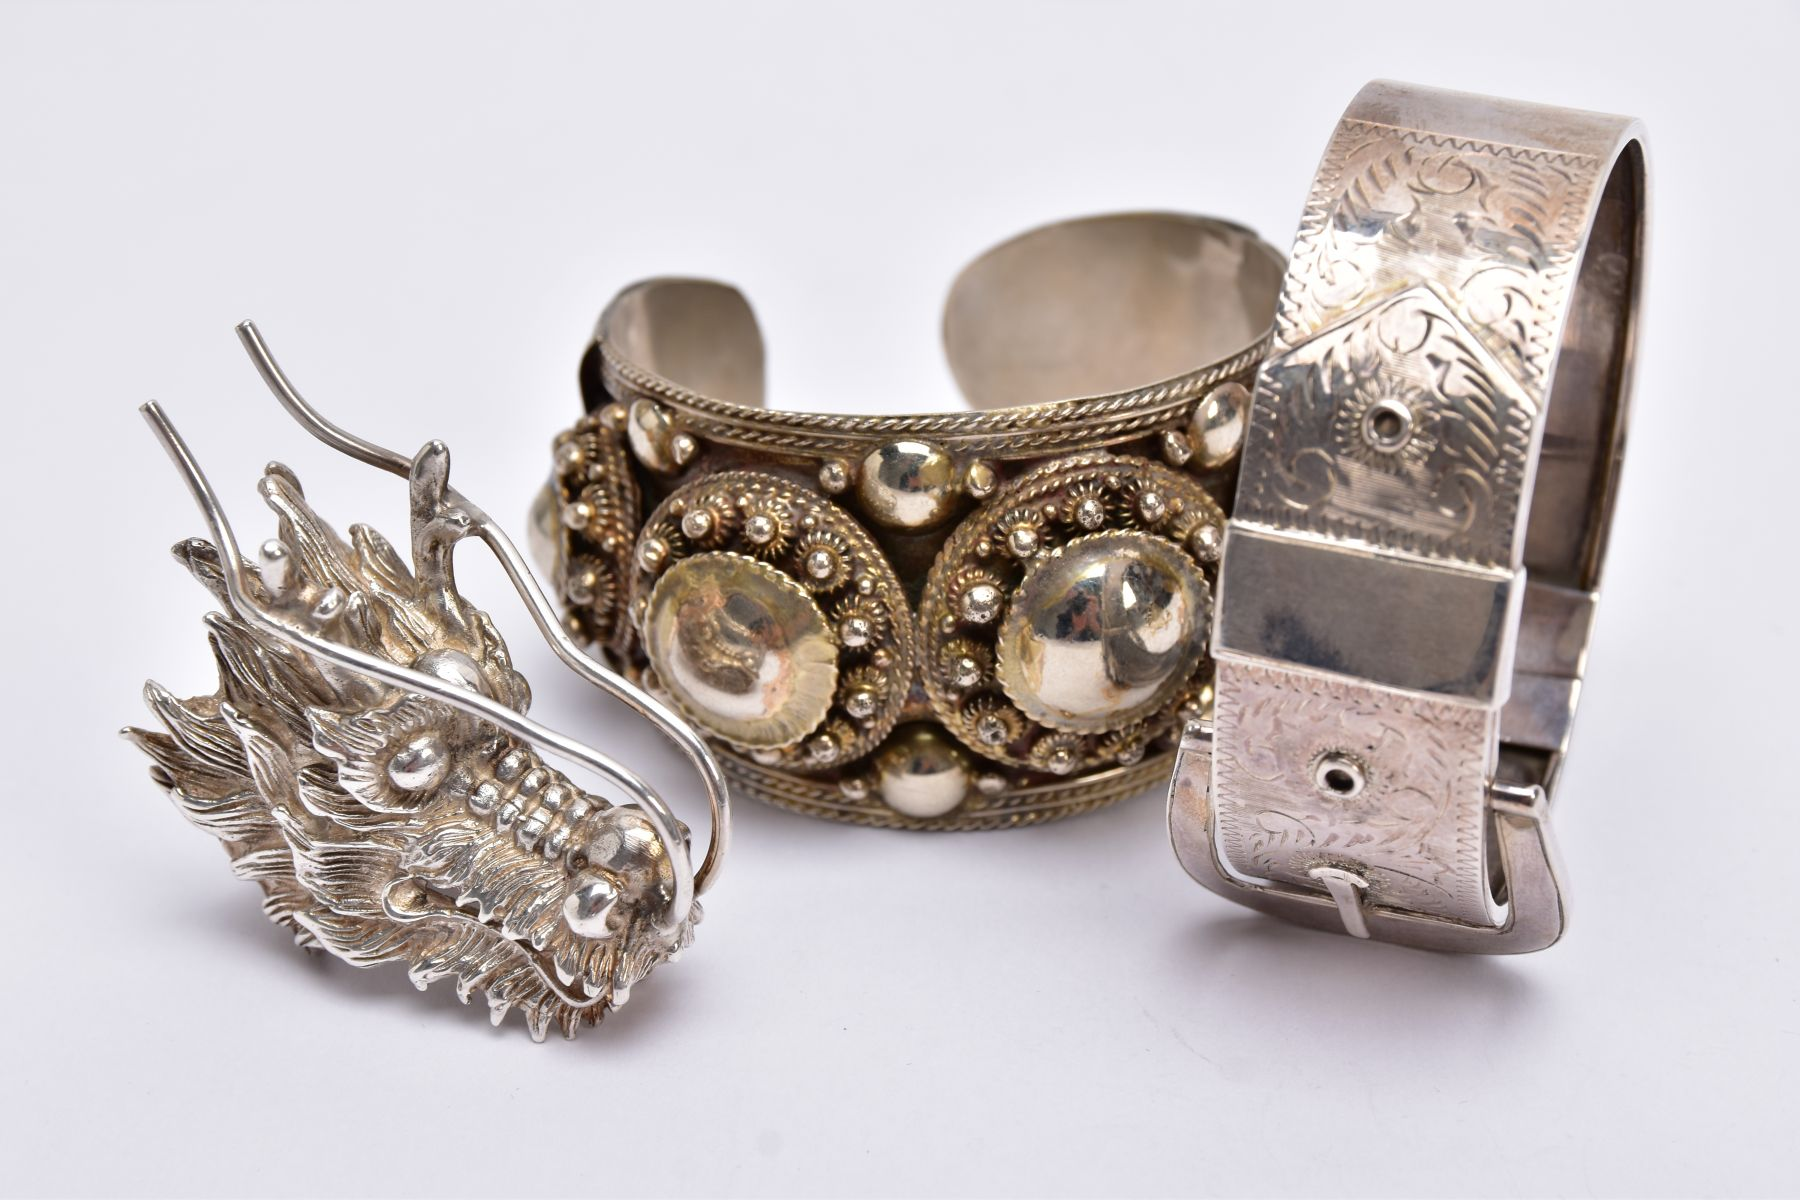 A WHITE METAL BANGLE, CUFF BANGLE AND A RING, the hinged bangle of a belt and buckle design, foliate - Image 5 of 5